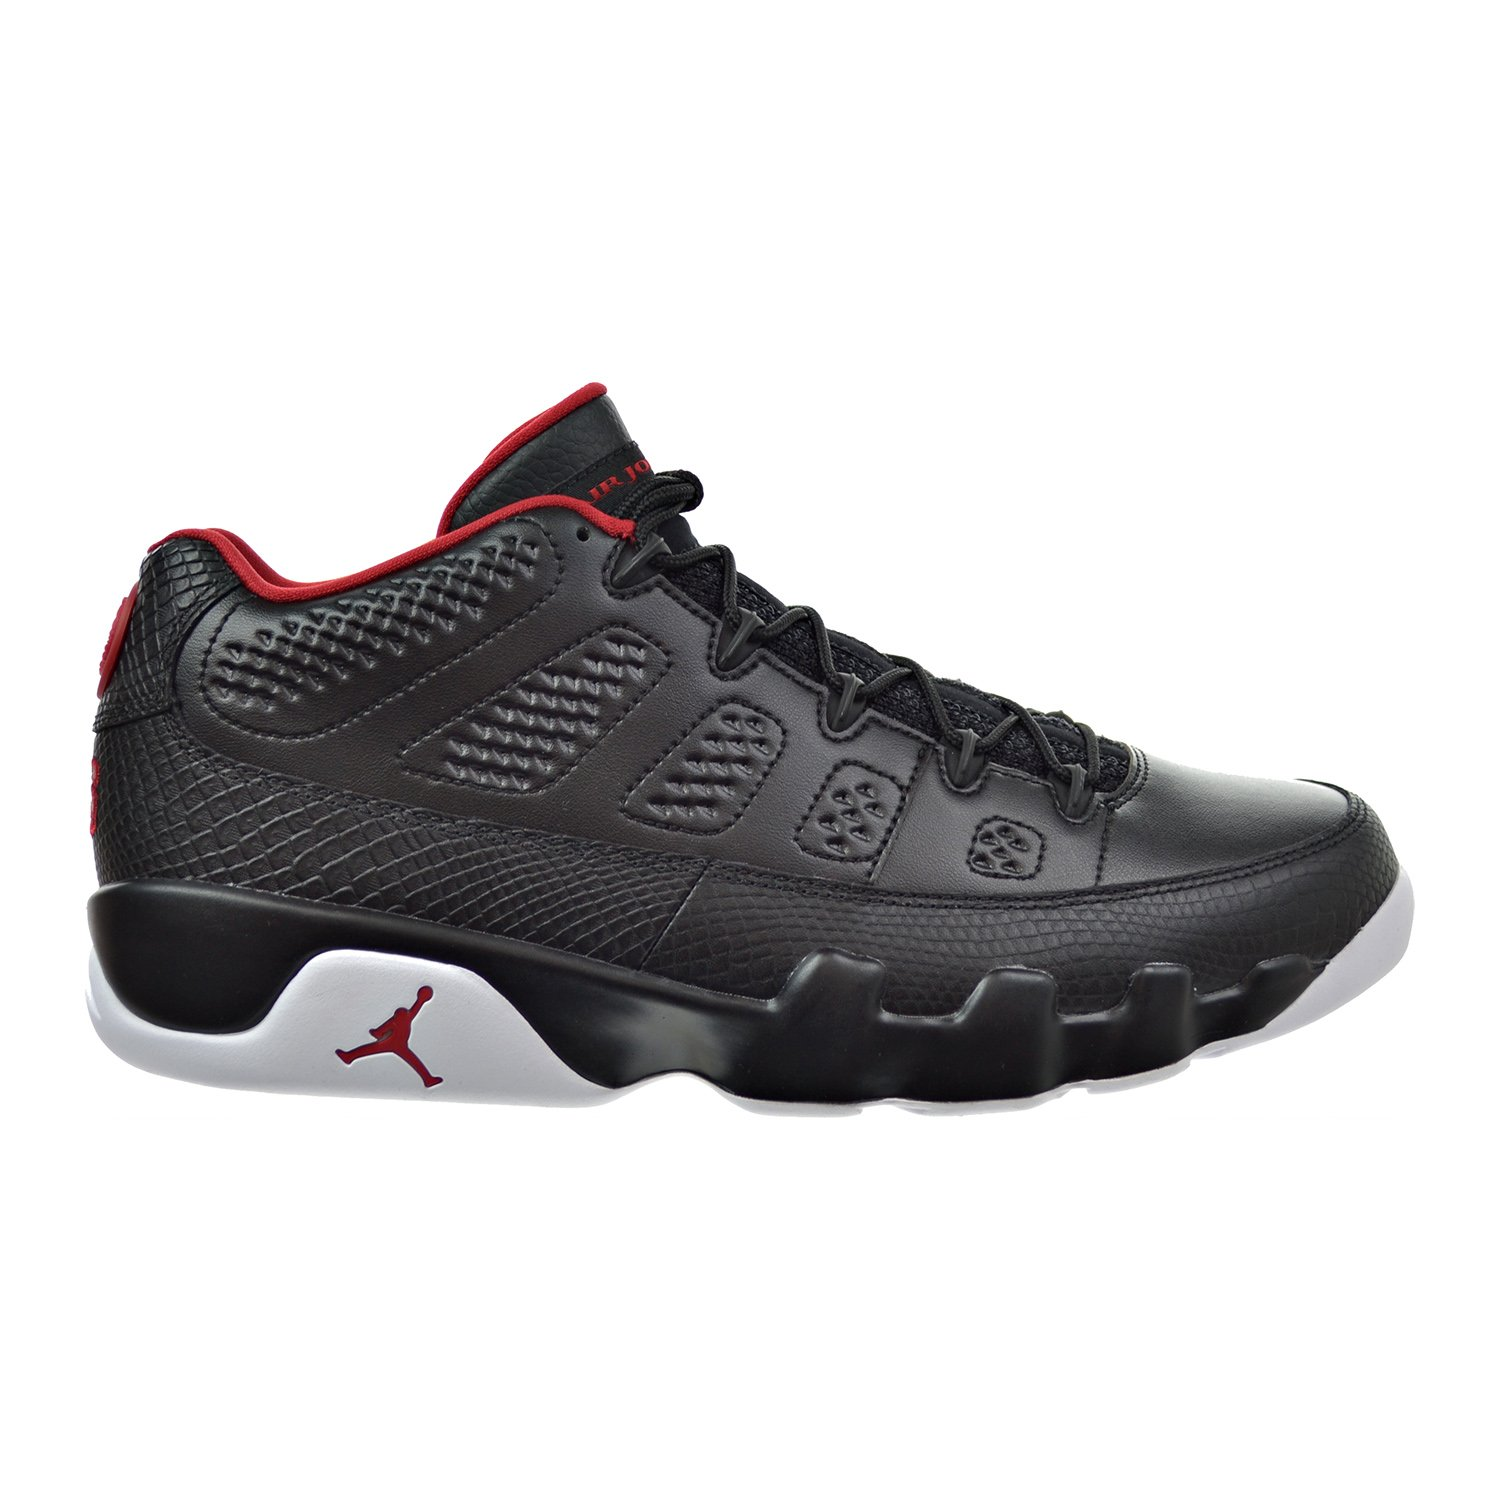 new product 96848 afee8 Amazon.com   Jordan Air 9 Retro Low Men s Shoes Black Gym Red White  832822-001   Fashion Sneakers